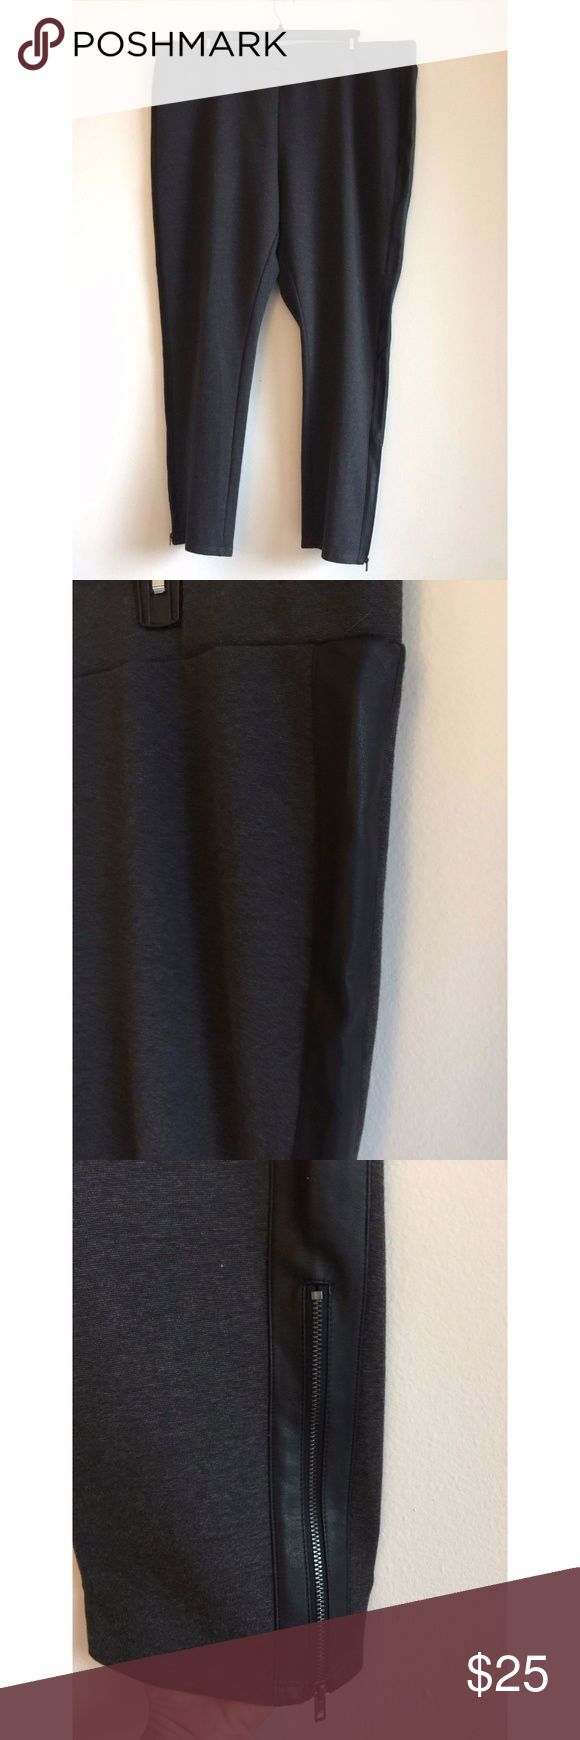 """NWOT Lane Bryant Gray Tuxedo Stripe Pants Sz 28 New w/o tags Inner label marked to prevent store returns  Size: 28 Color: Gray w/ Black Tuxedo Stripe Cotton/Polyester/Spandex  Stretch Waistband Ponte Knit Ankle Zip Machine Wash  Measurements (approx, taken flat across): Waist 24"""", Rise 14.5"""", Hips 28"""", Inseam 29"""", Leg opening 7.5"""" Lane Bryant Pants"""